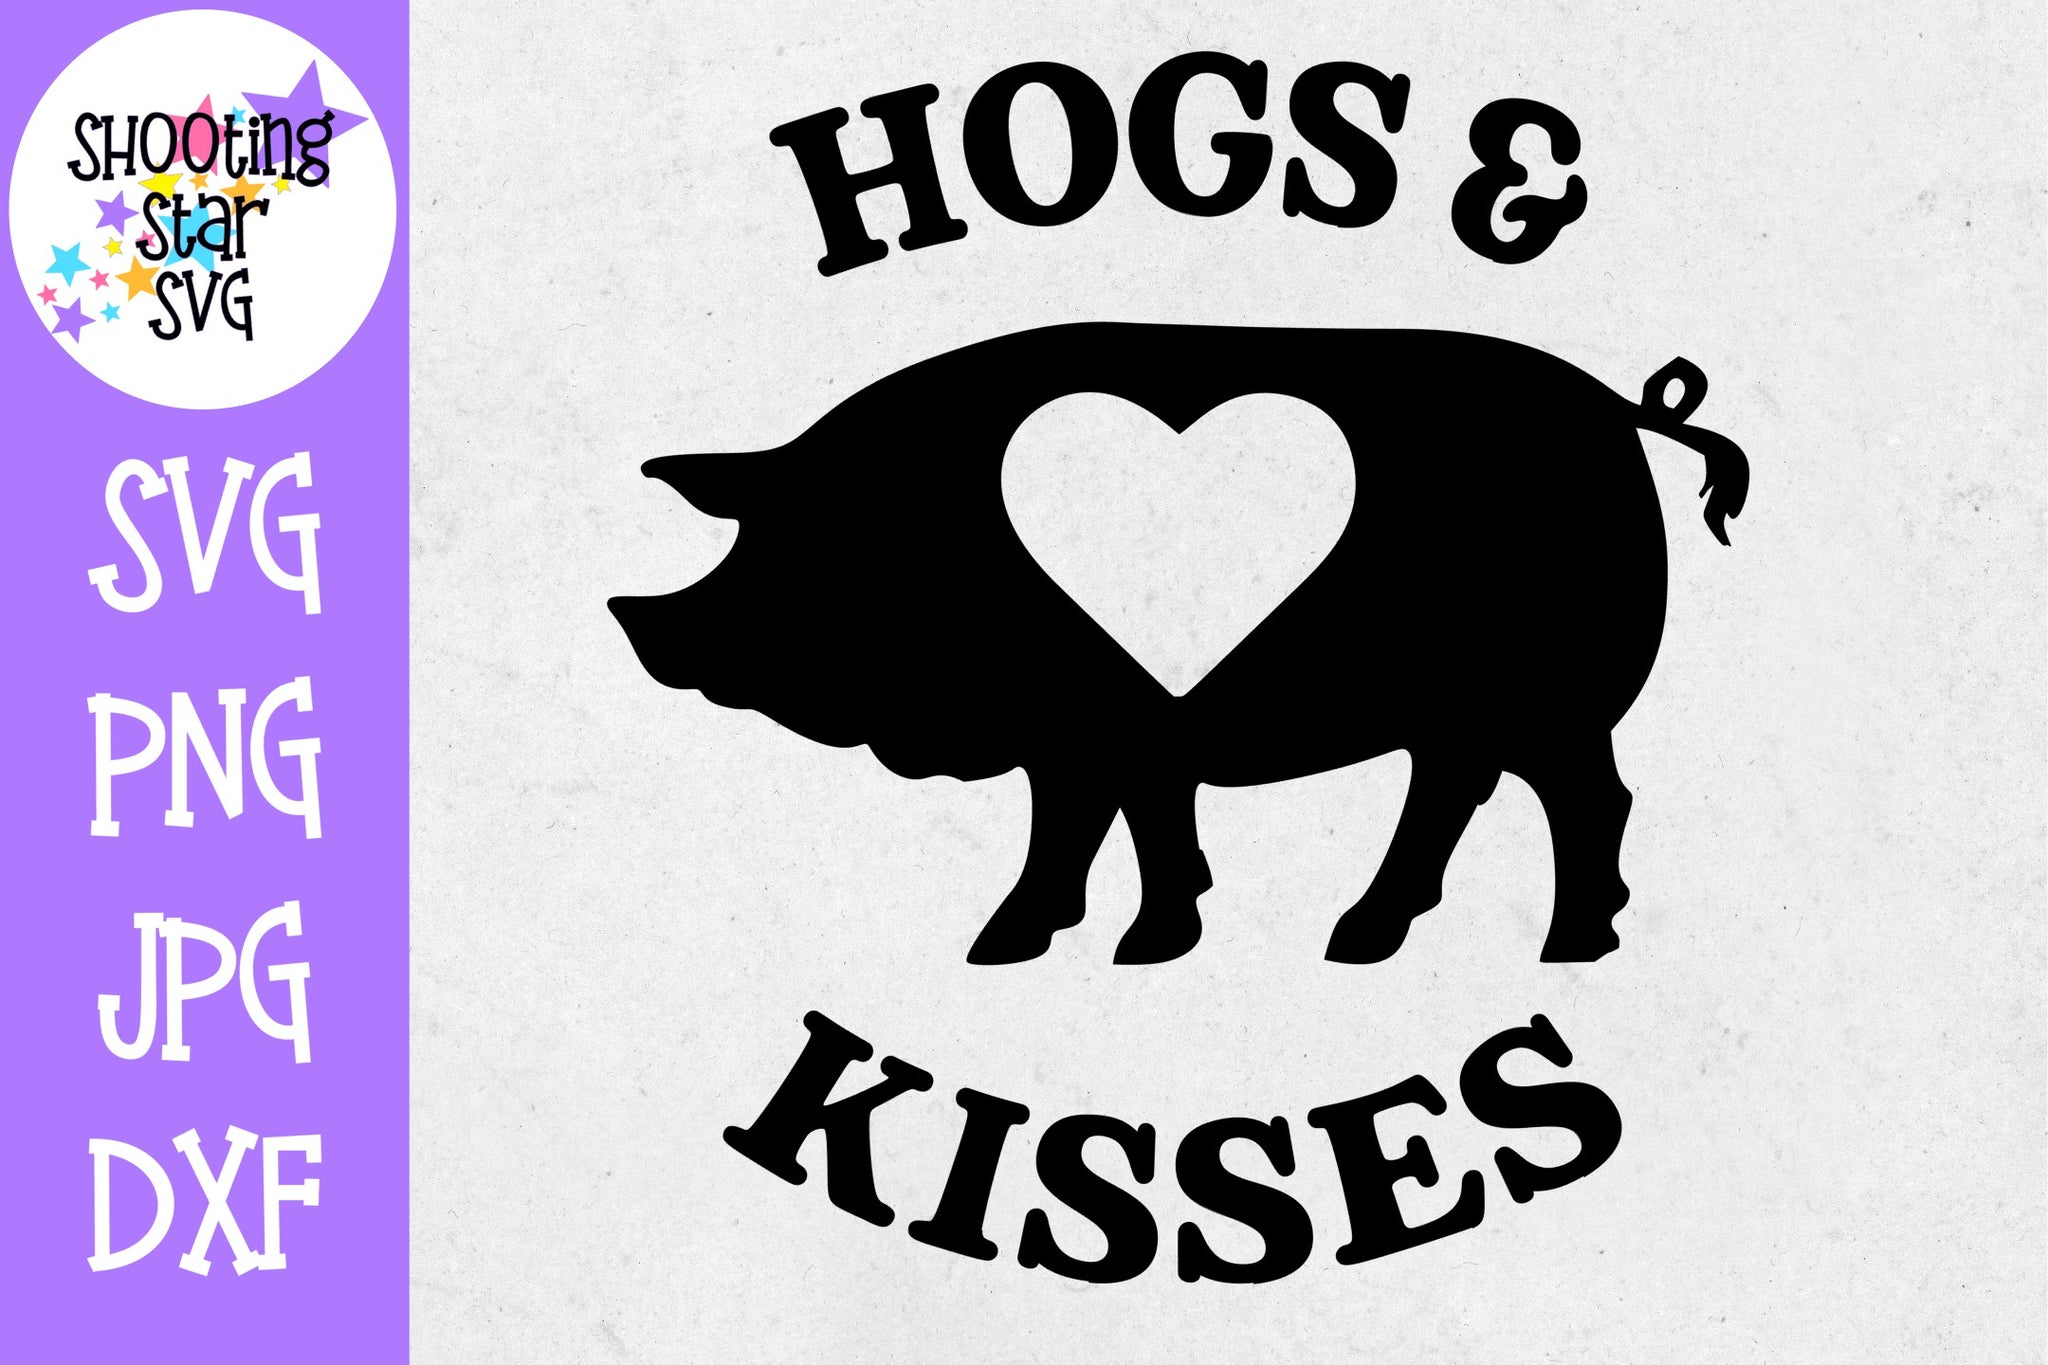 Hogs and Kisses - Hugs and Kisses - Valentine's Day SVG